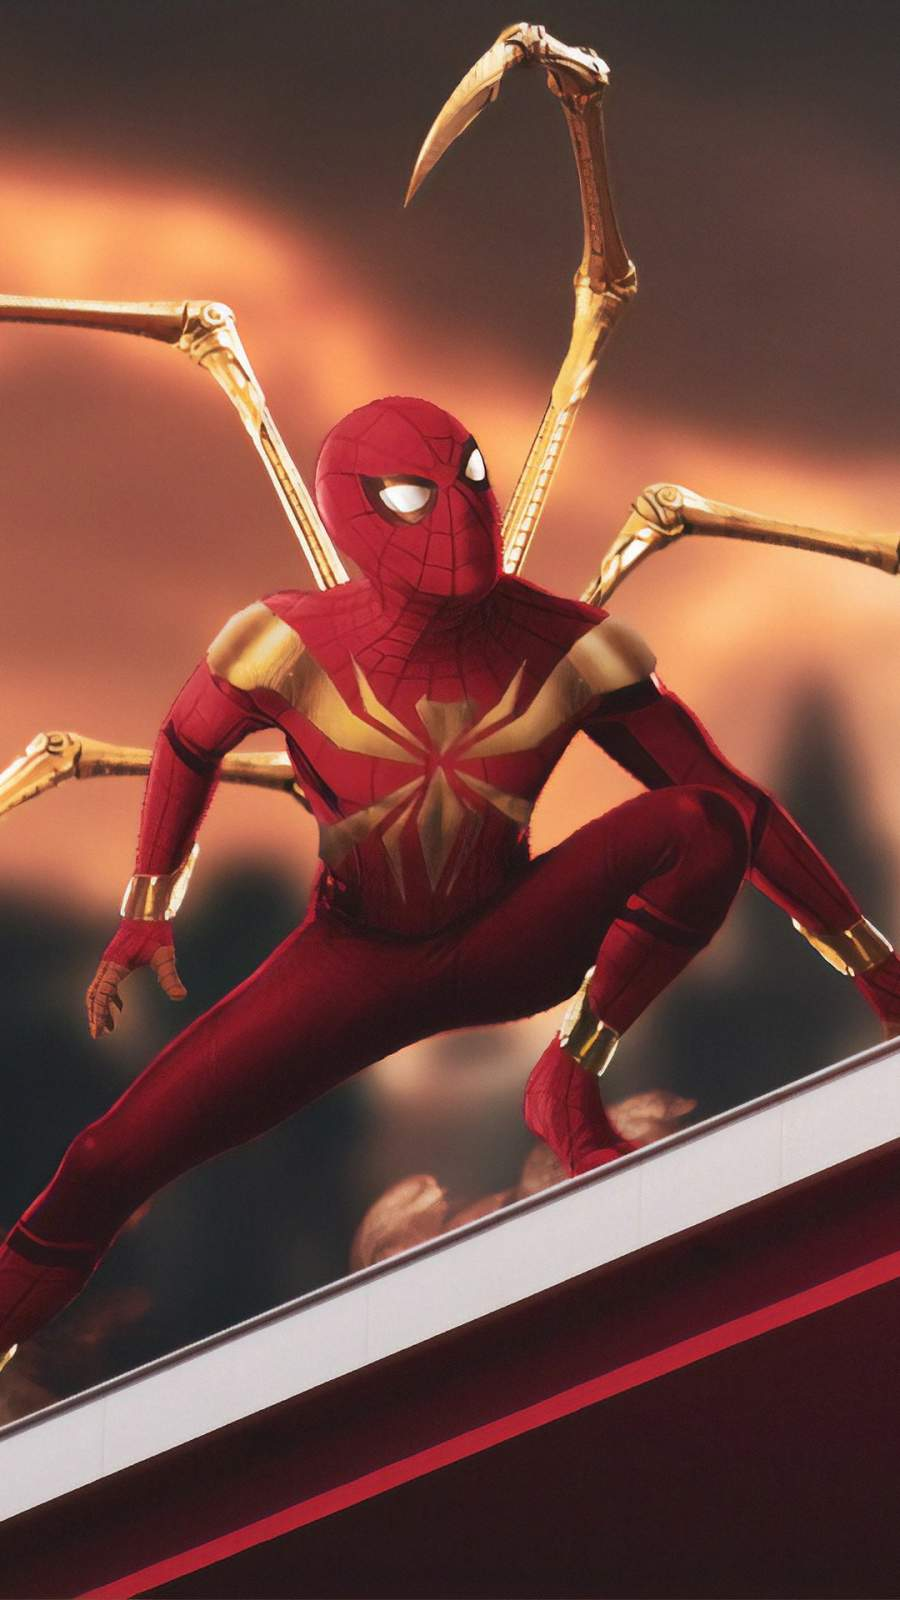 Iron Spiderman Future Suit iPhone Wallpaper